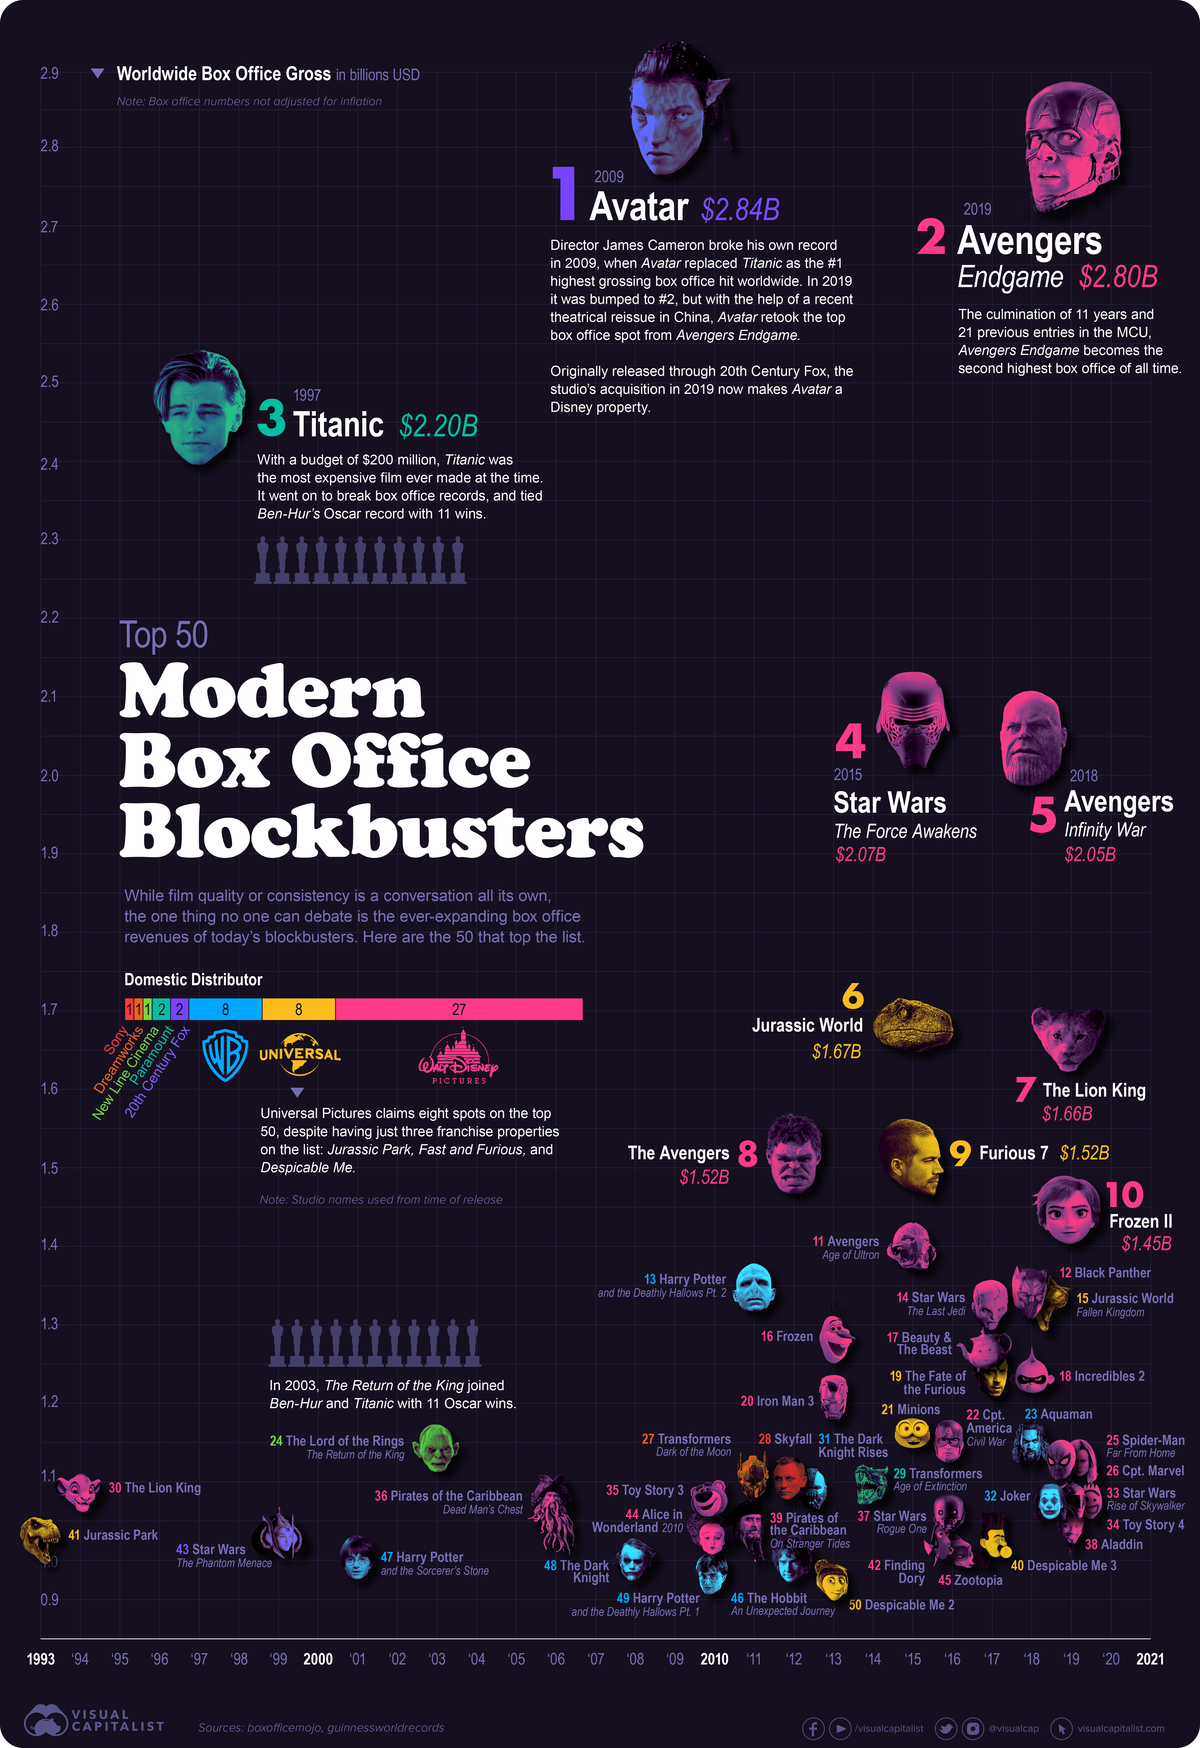 Top Grossing Movies in the Last 30 Years